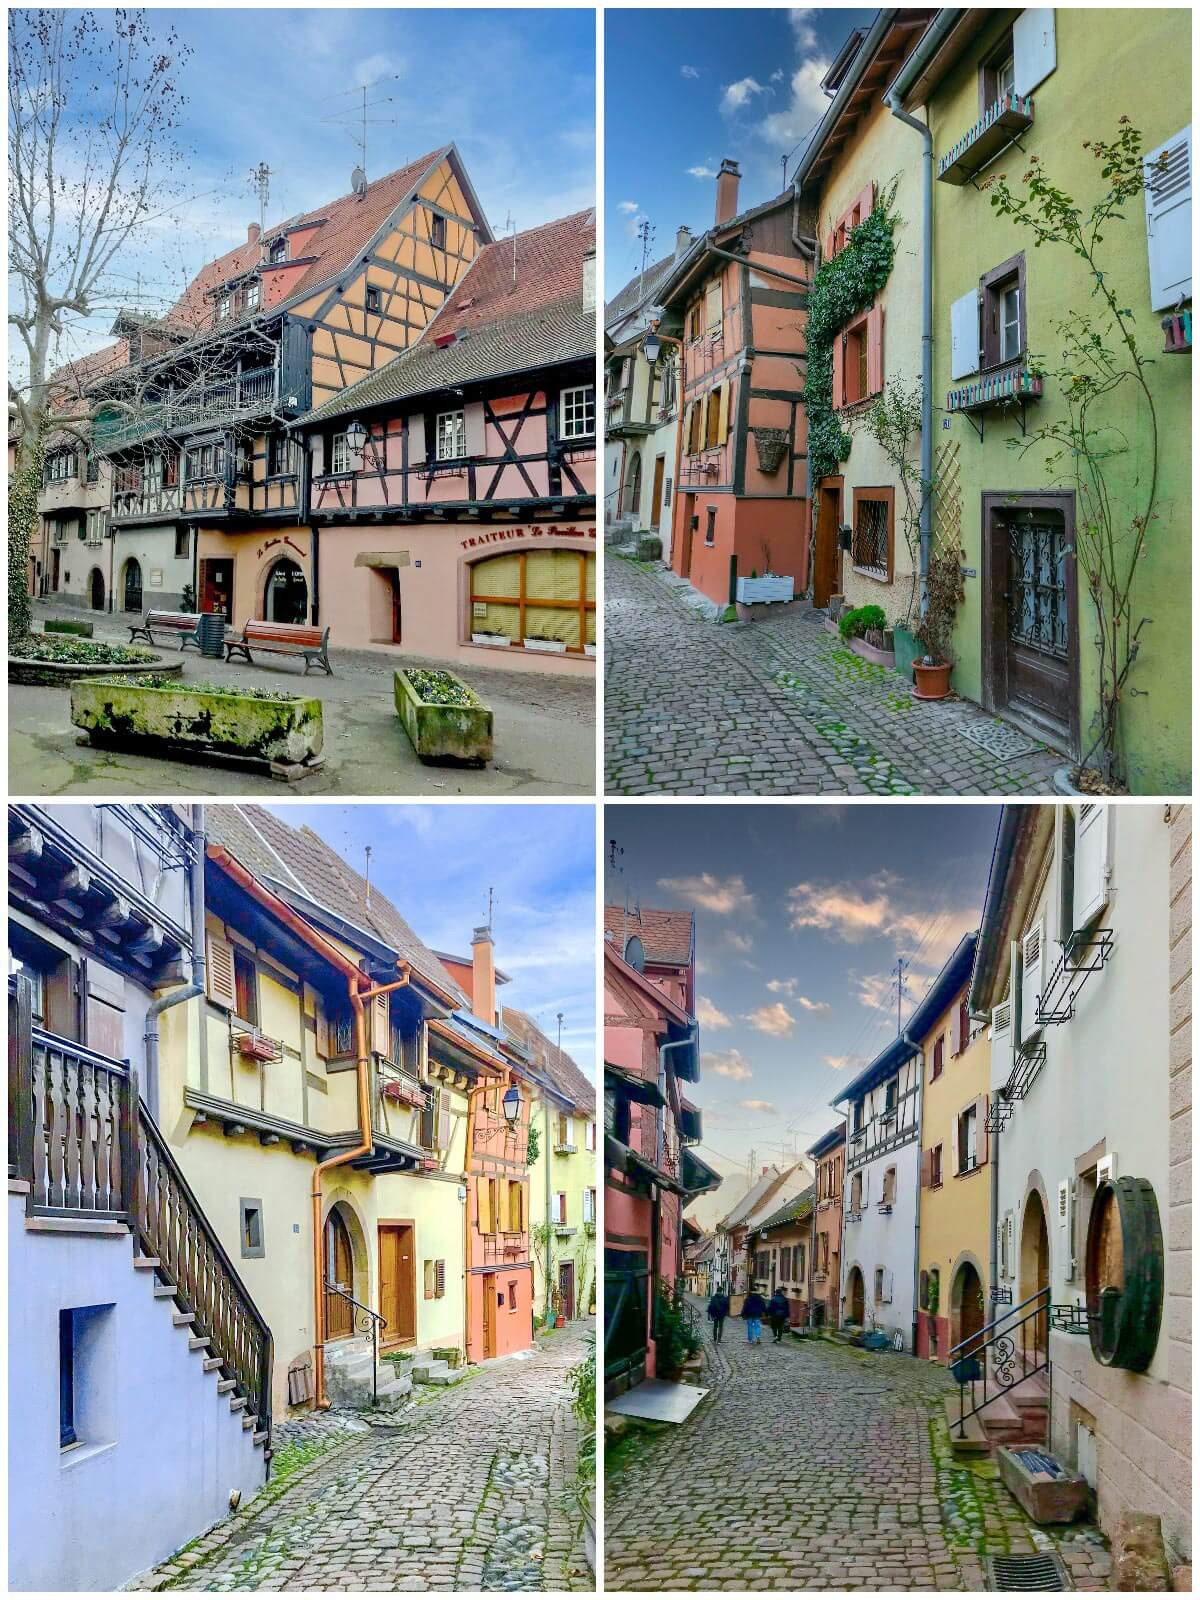 What to do in Eguisheim, France?